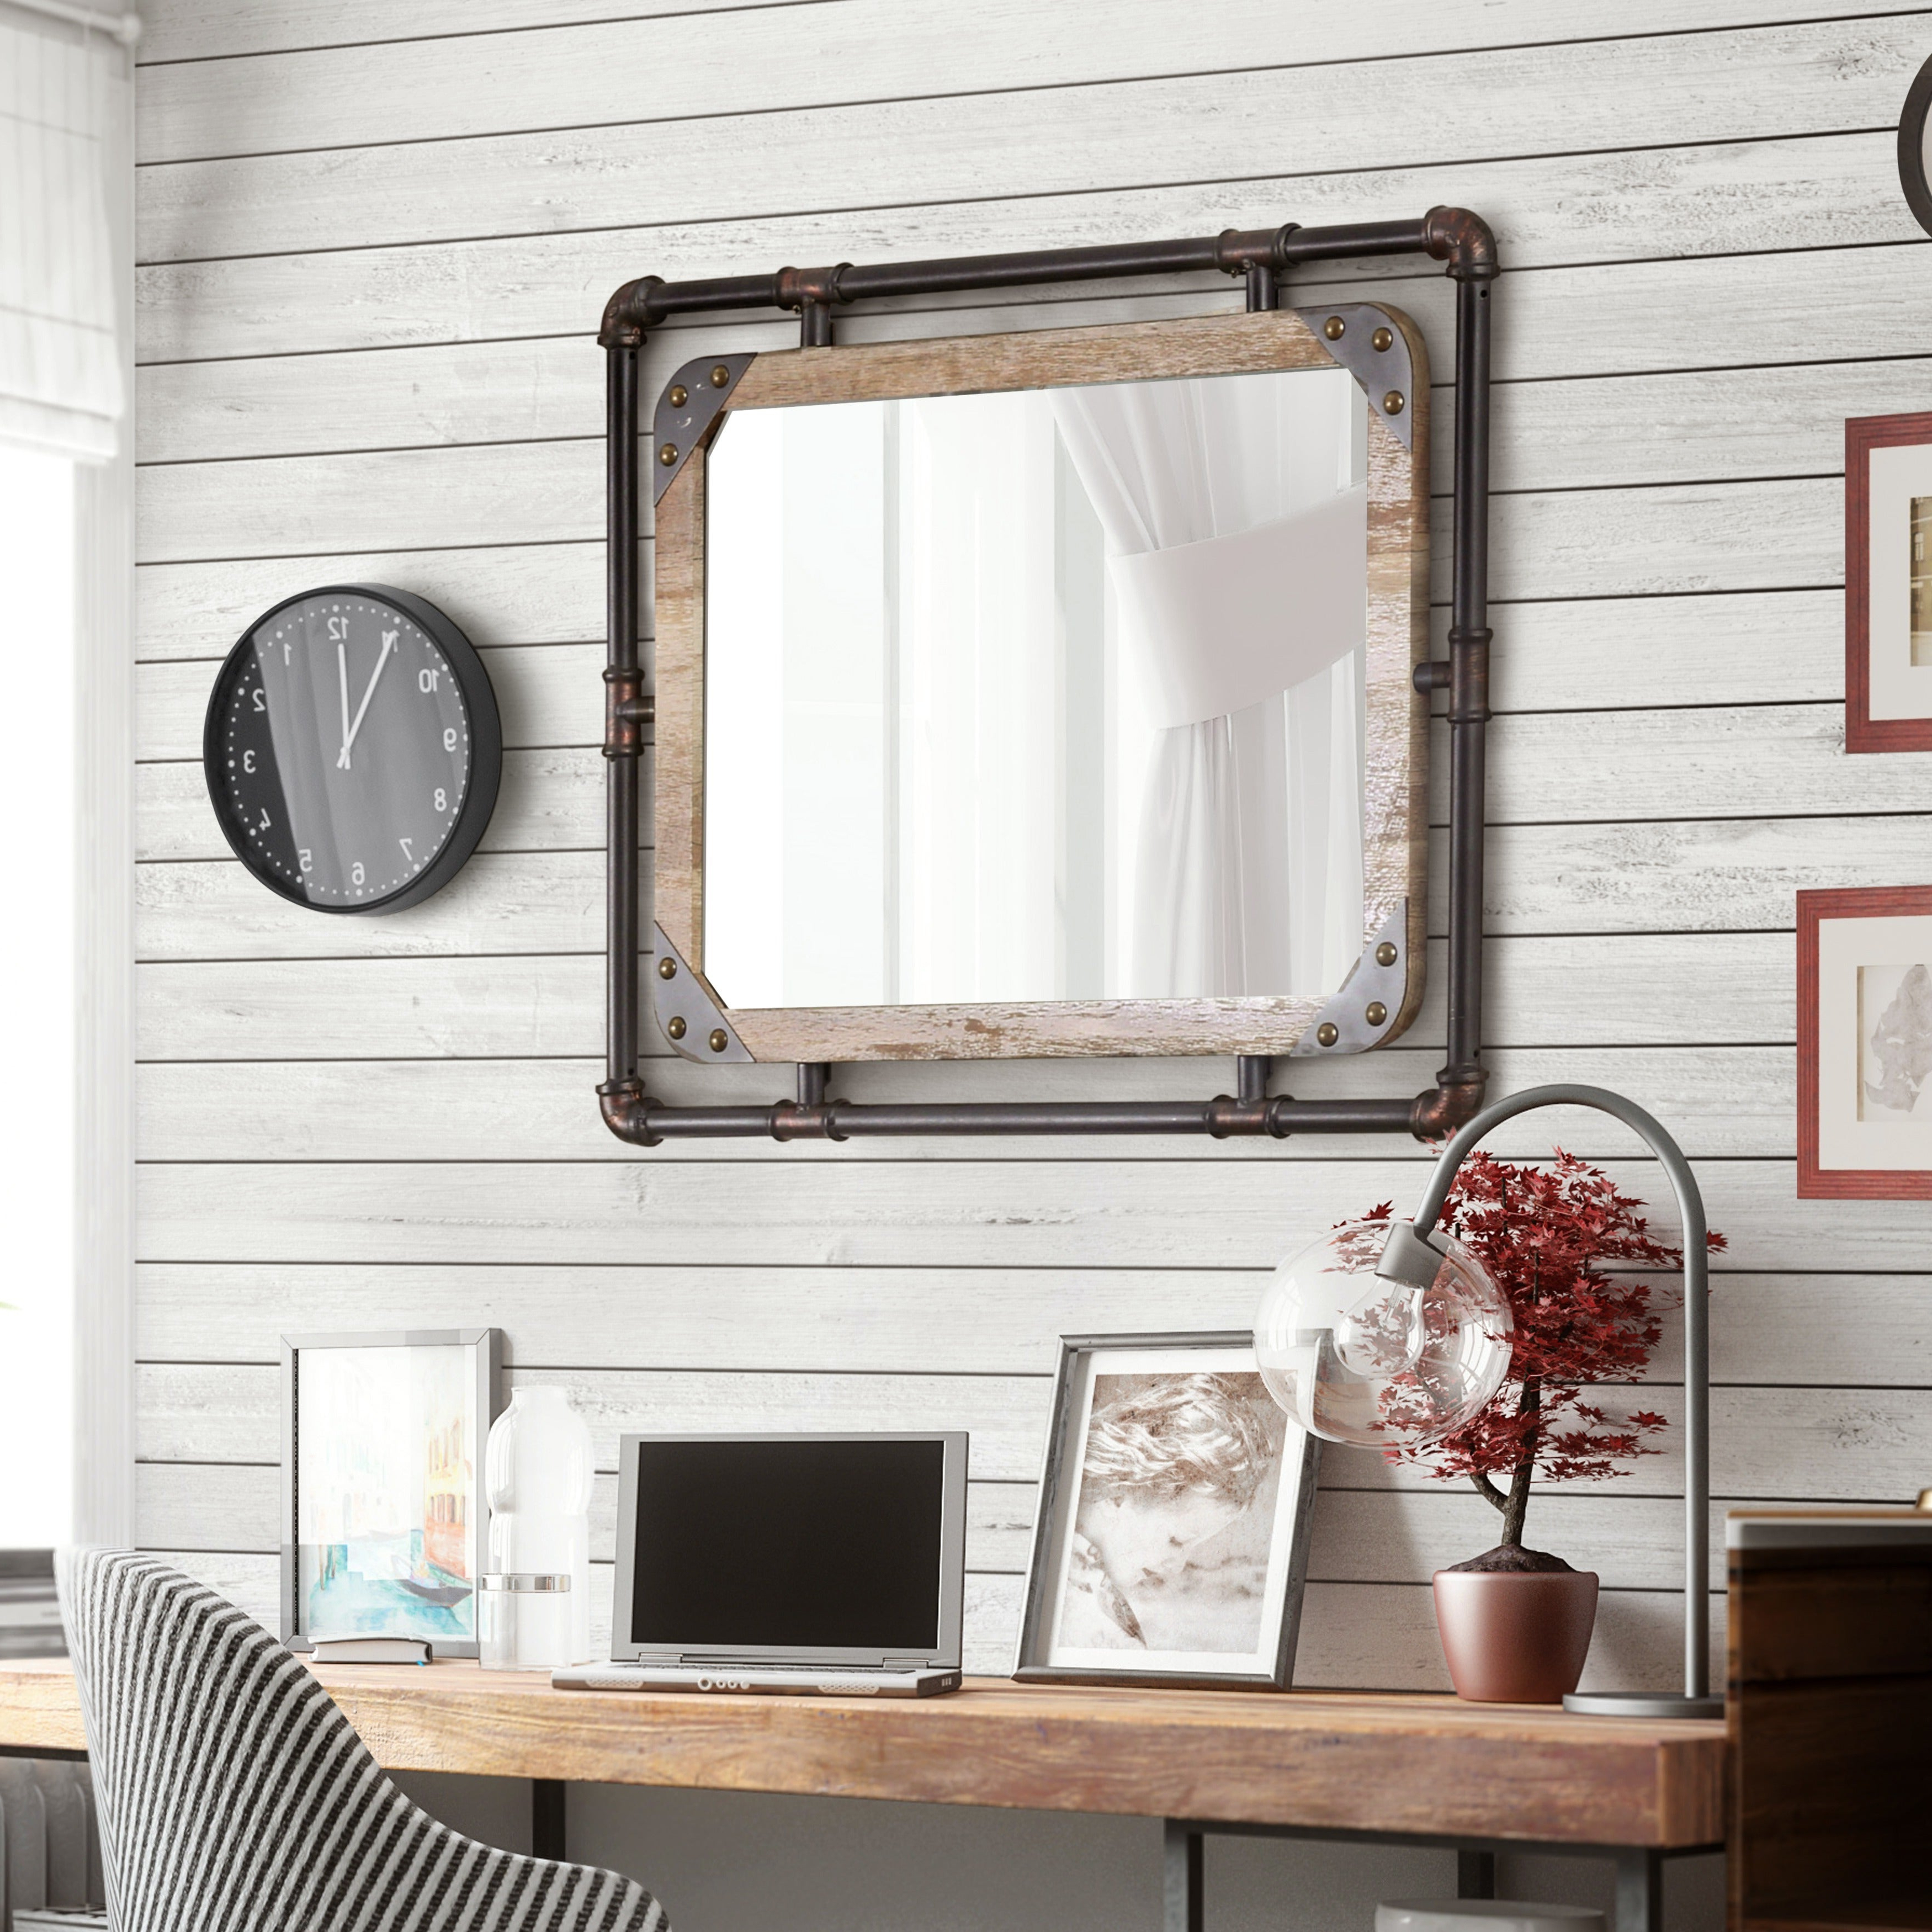 Furniture Of America Revo Industrial Distressed Wall Mirror Regarding Most Up To Date Wall Mirrors (View 11 of 20)